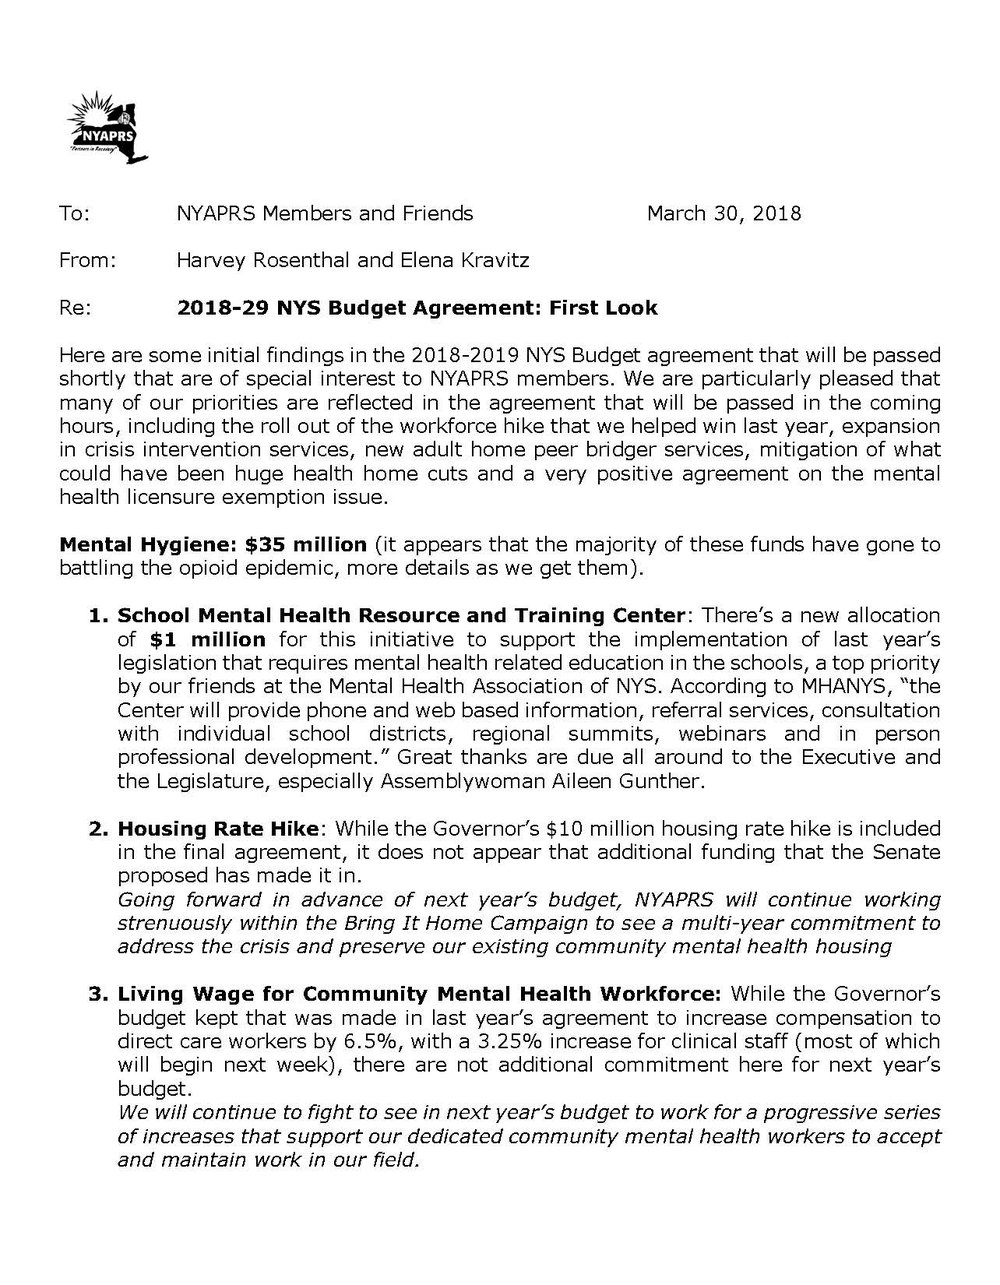 March 30 2018 Budget First Look_Page_1.jpg